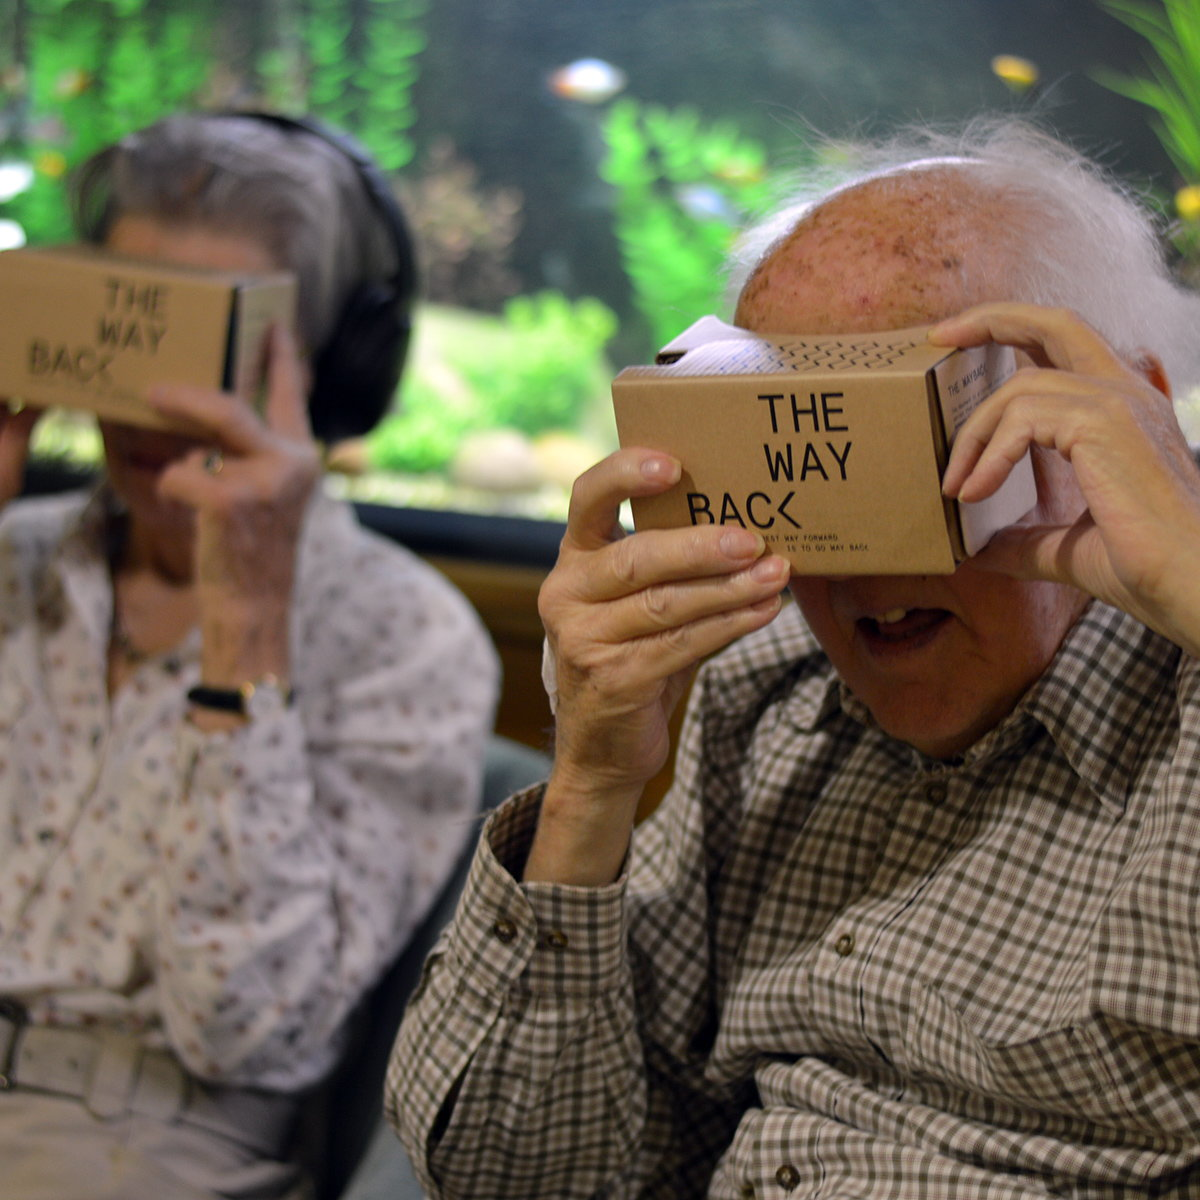 VR for Dementia Sufferers Wins New 'Side Hustle' Category at 2019 D&AD Awards